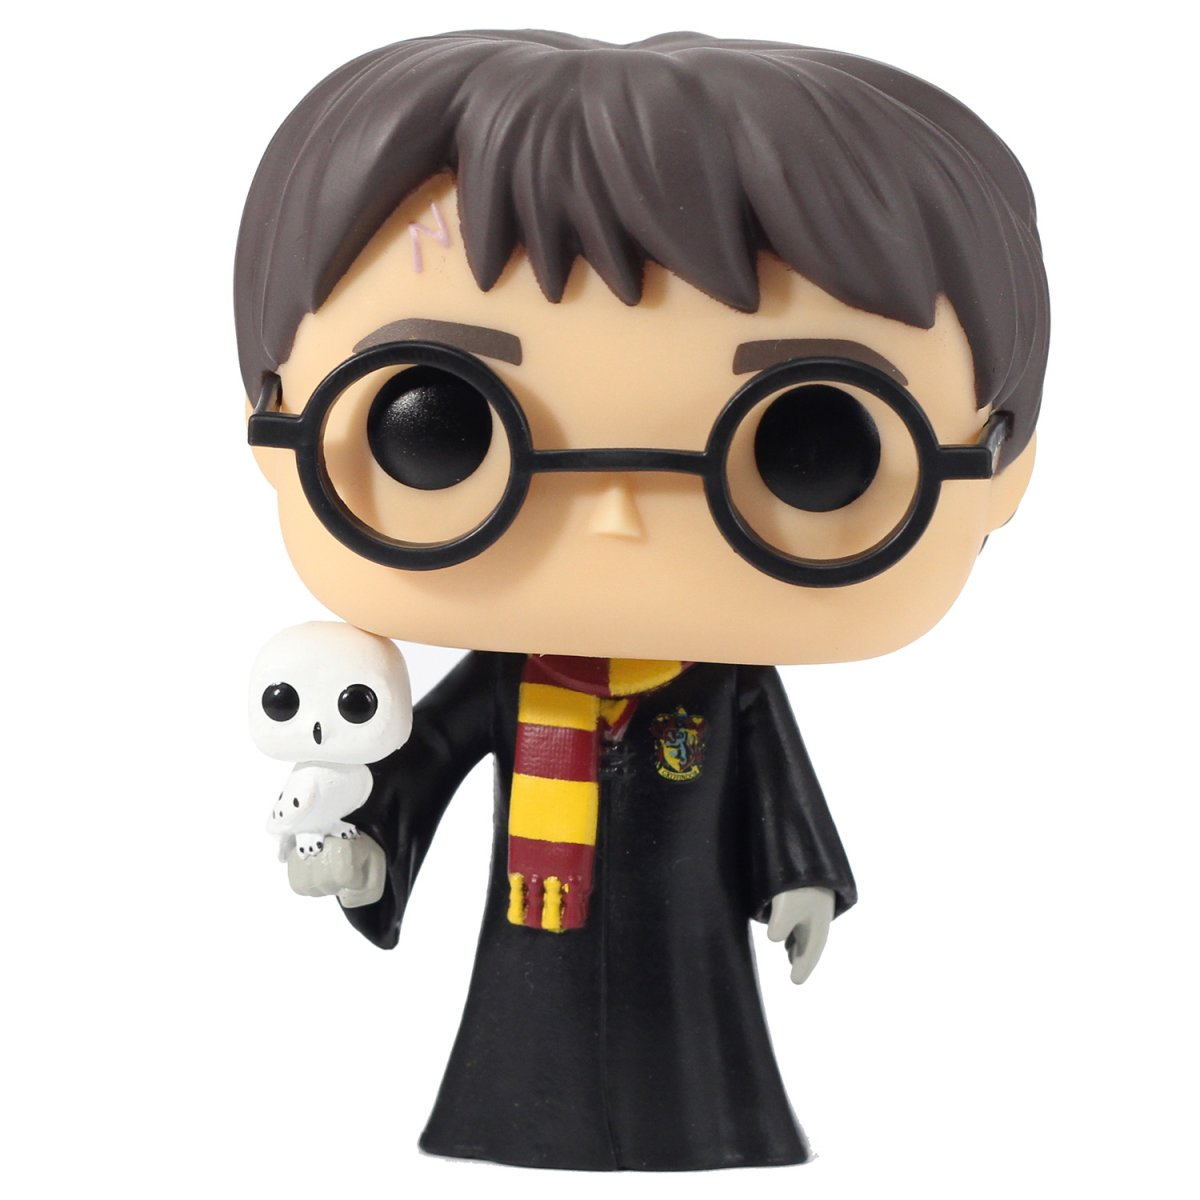 Фигурка Funko POP! Vinyl: Harry Potter: Harry w/ Hedwig (Exc) 11915 (Гарри Поттер)